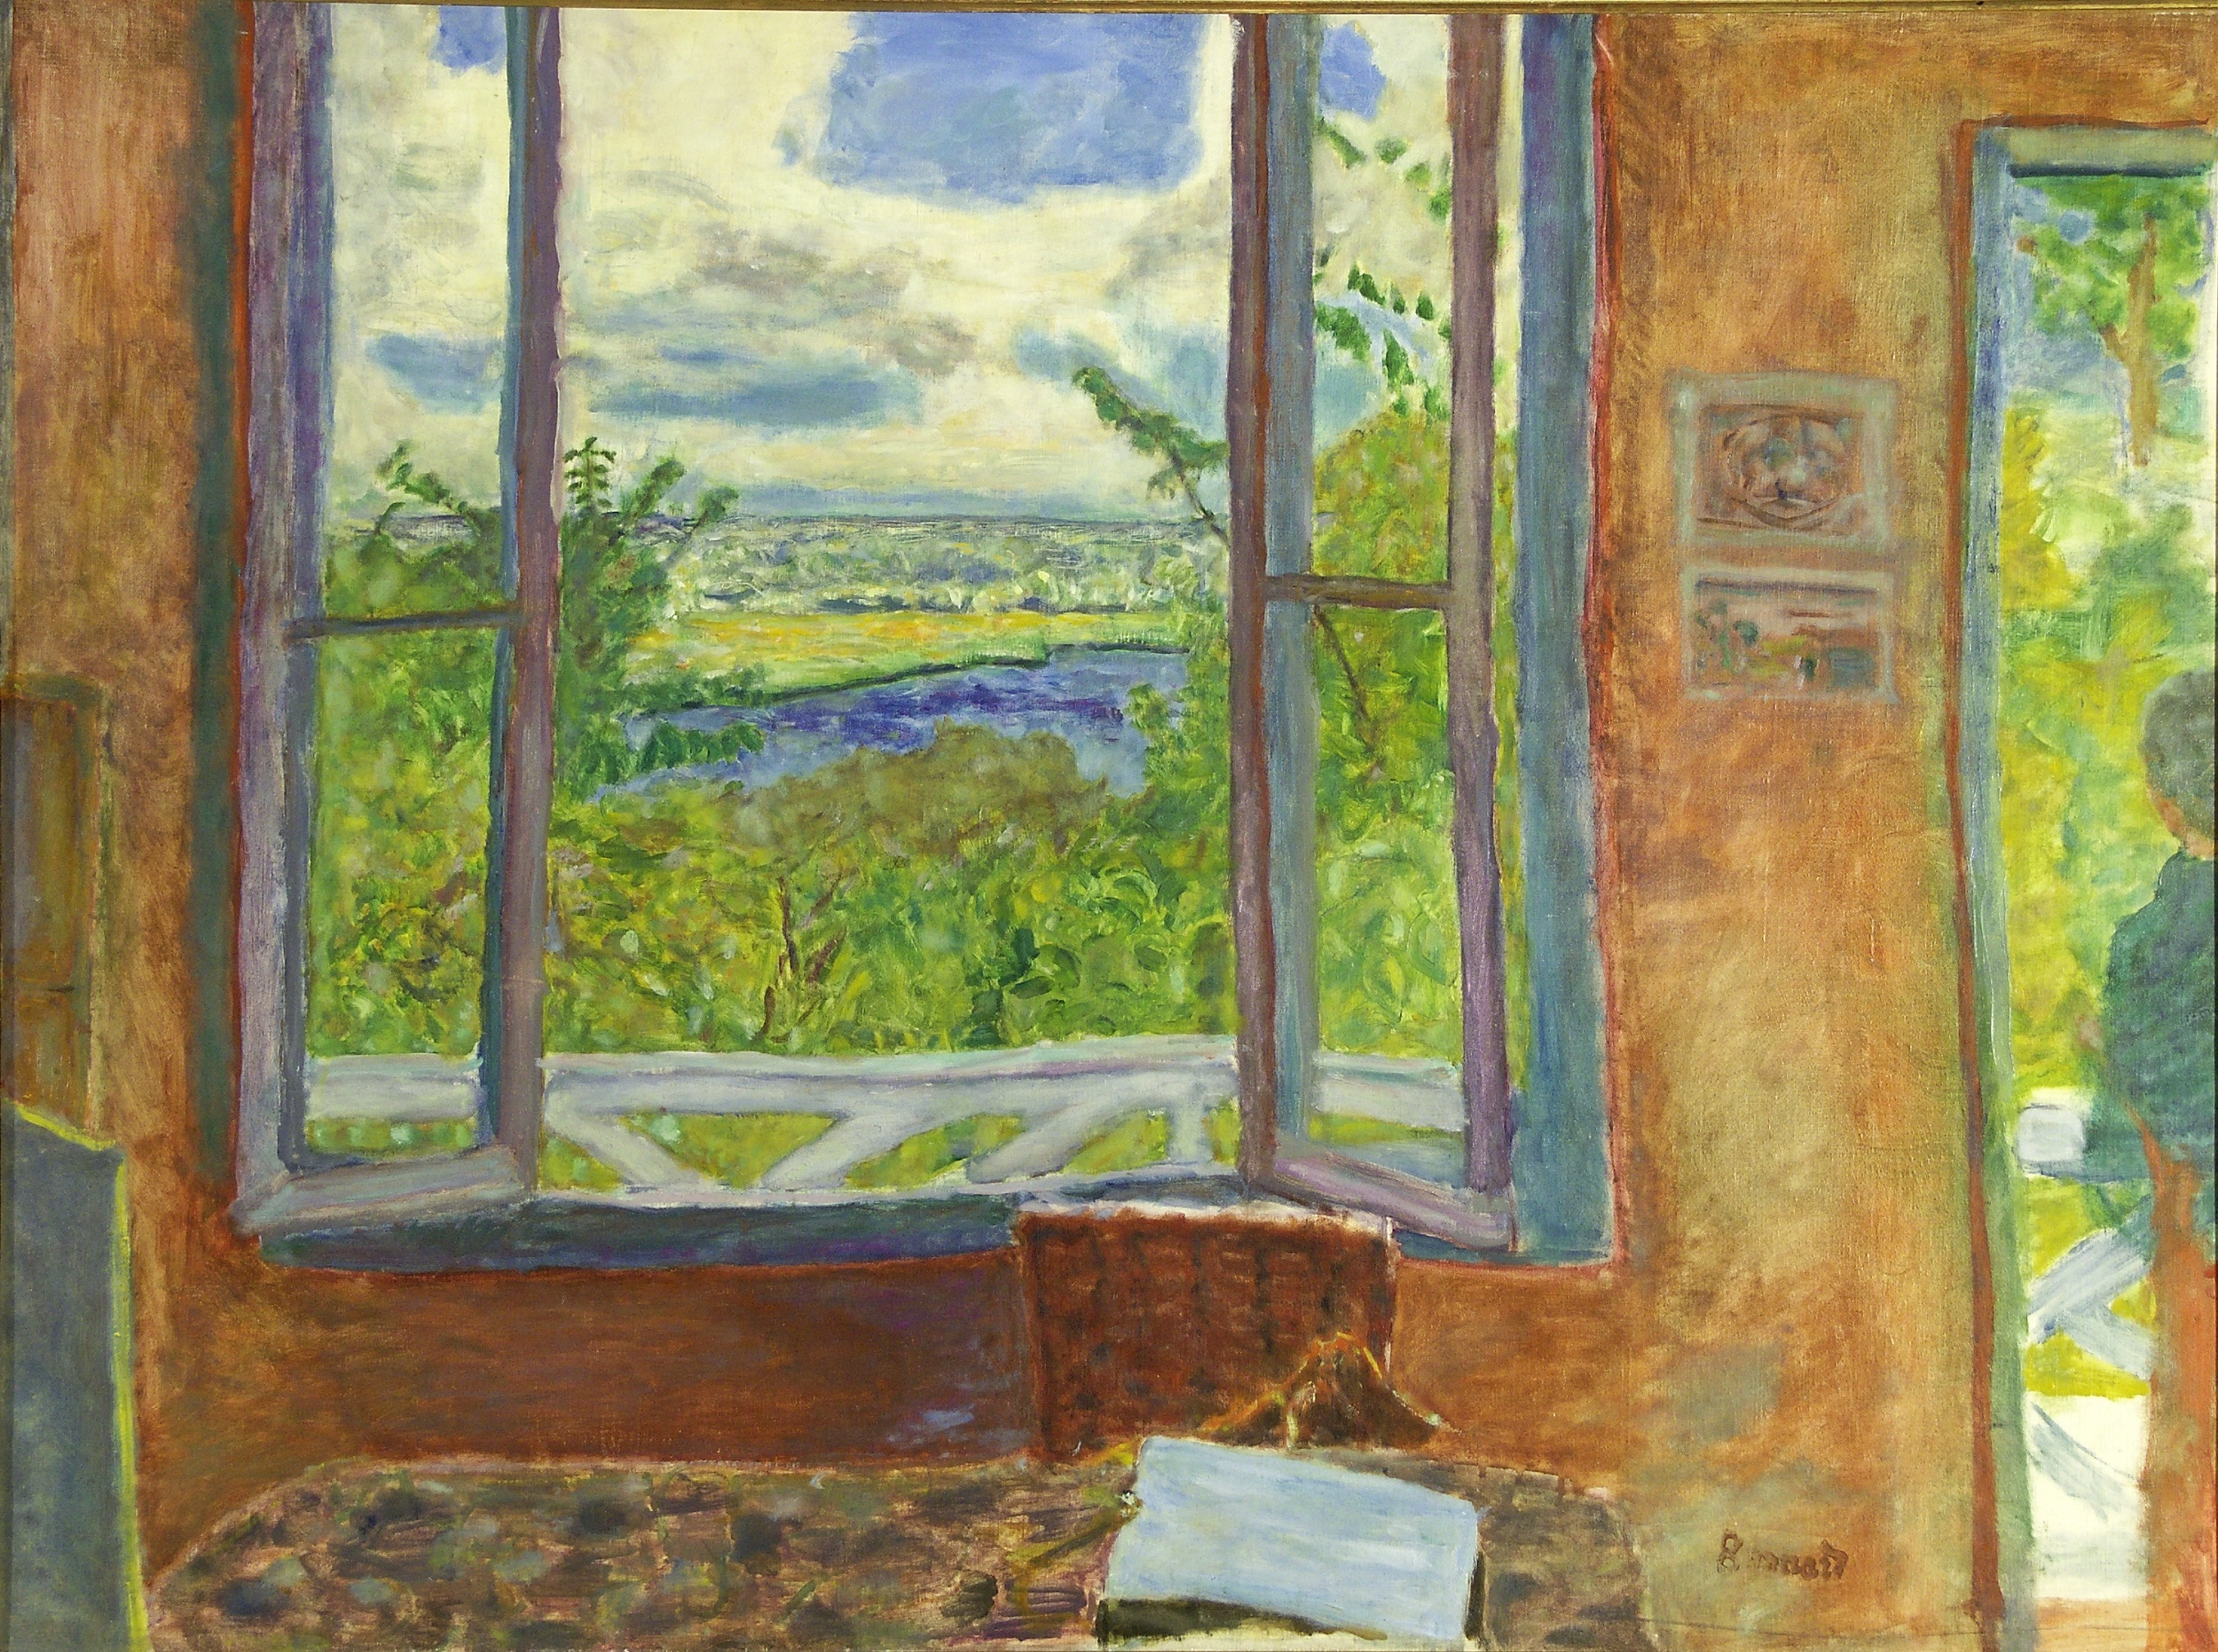 Bonnard en normandie for La fenetre ouverte